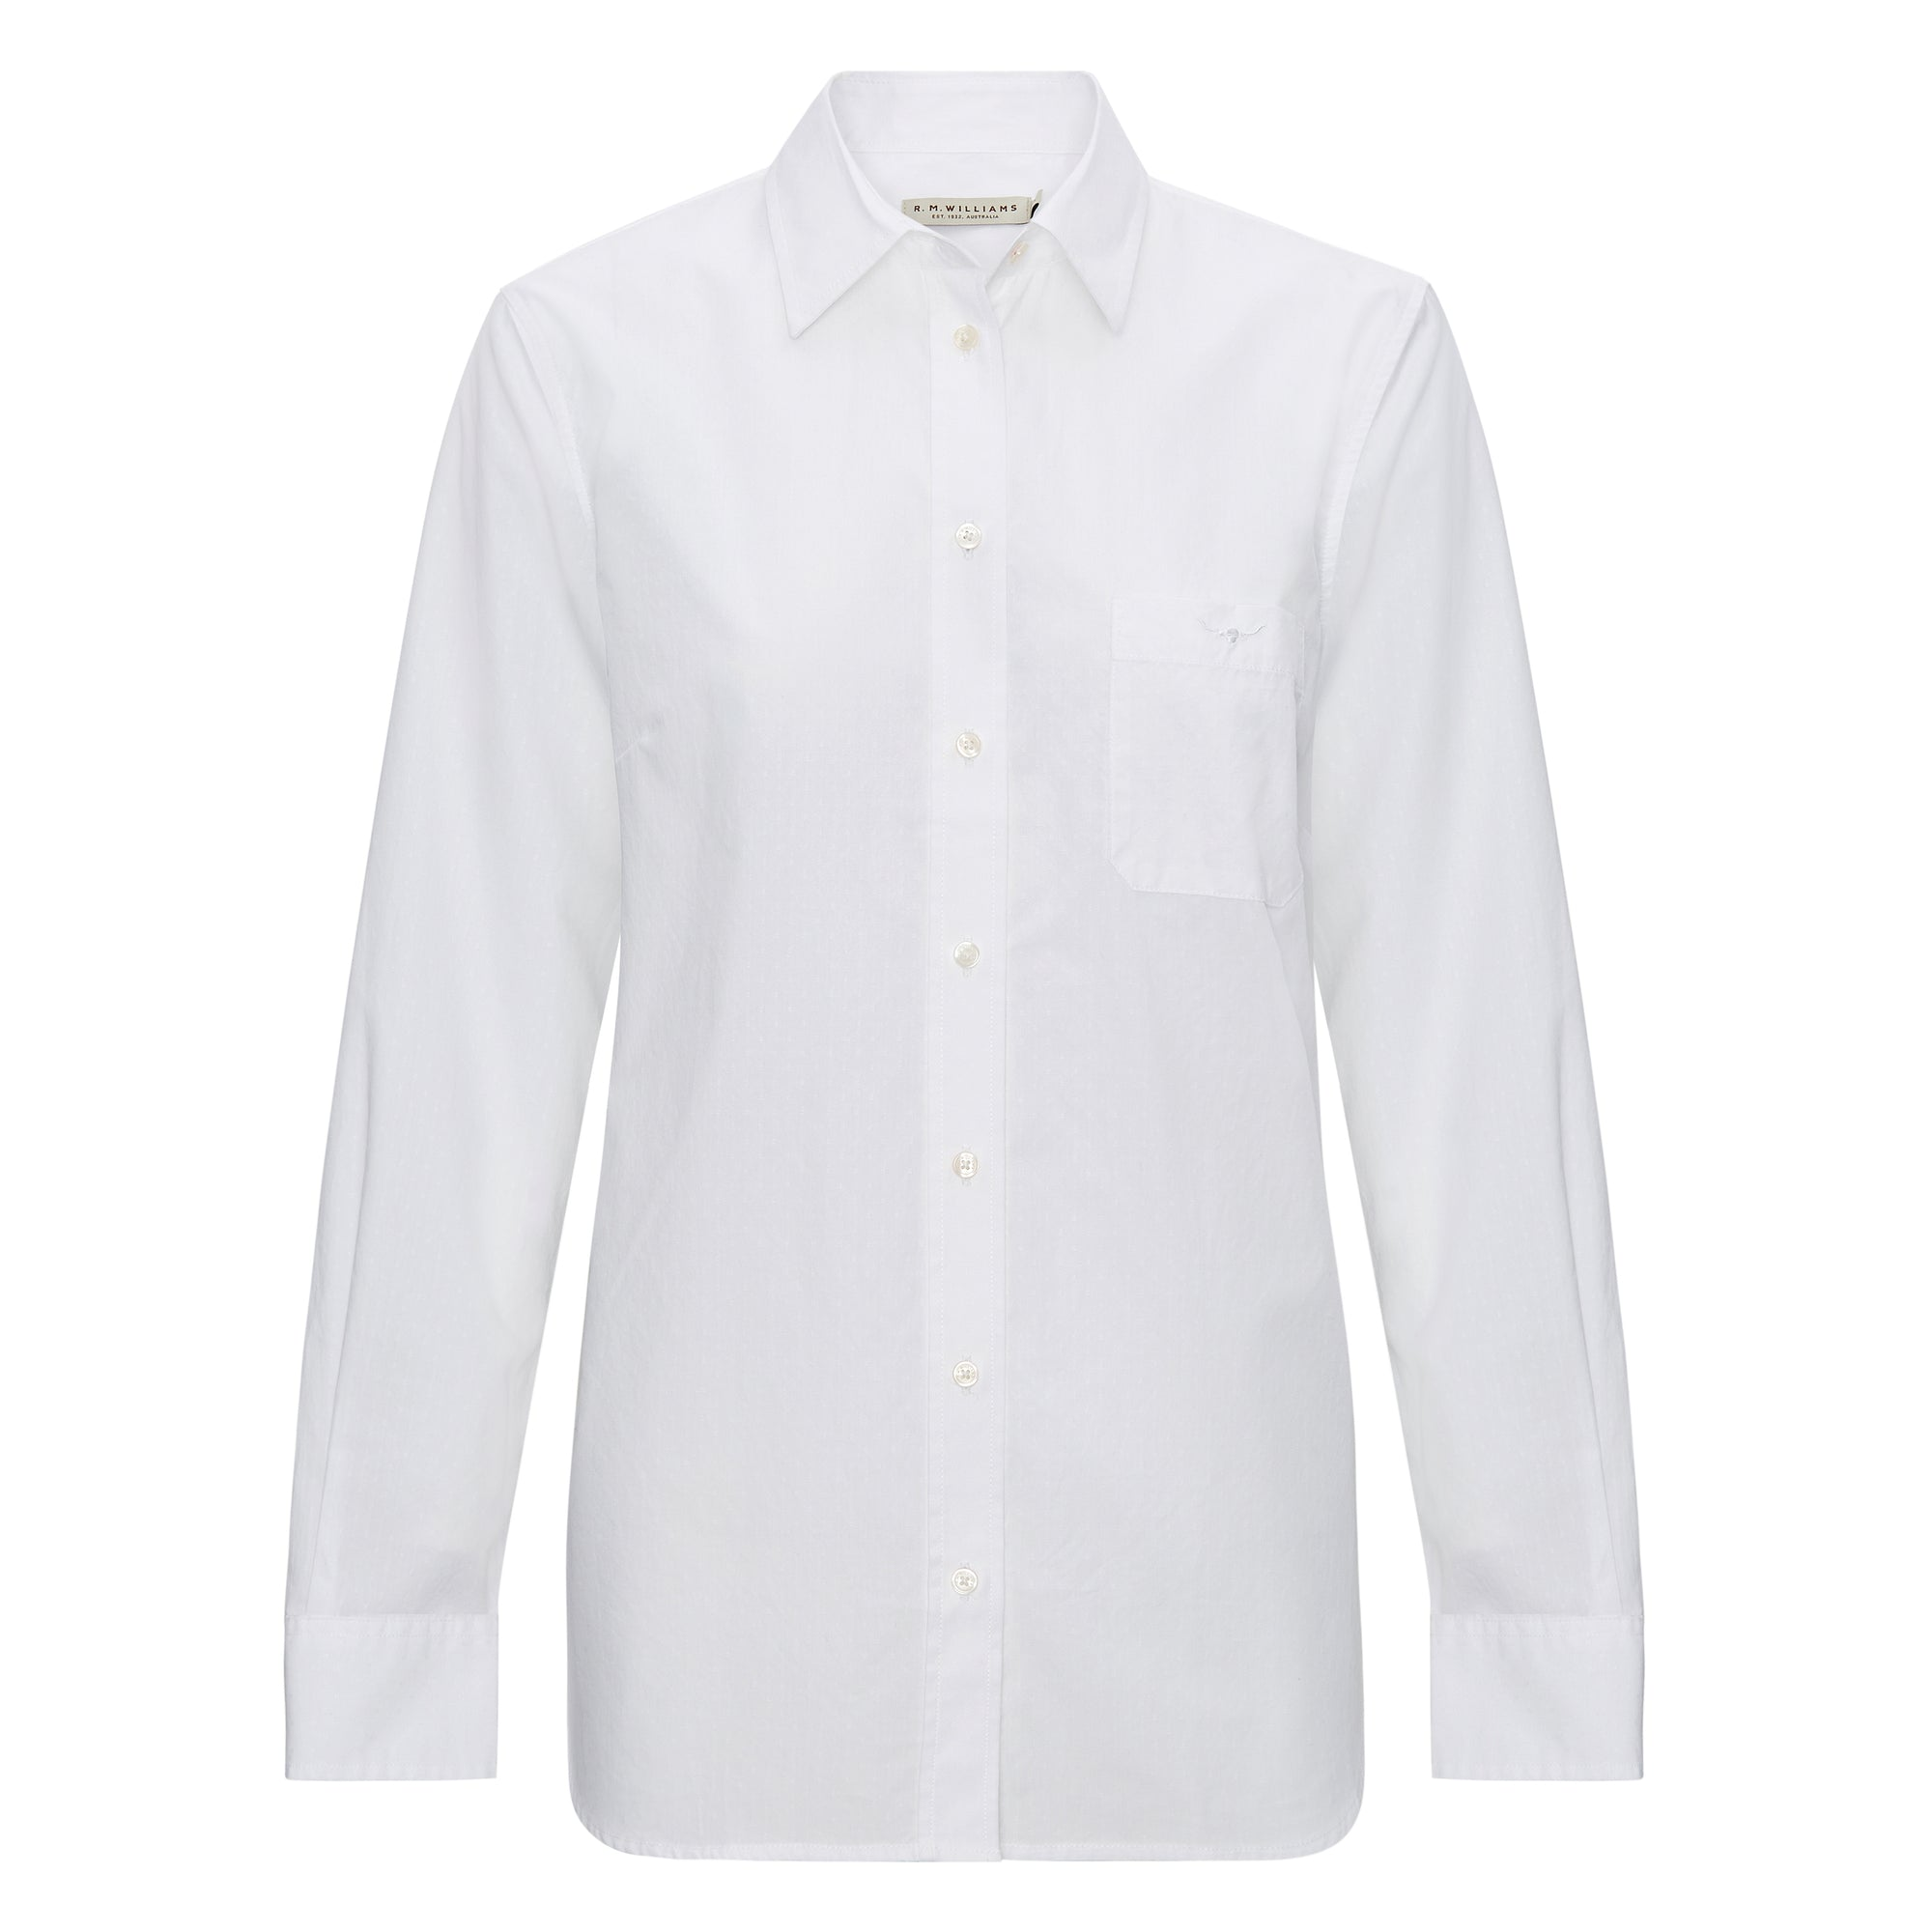 RM Williams Olivia Shirt (4498567168137)